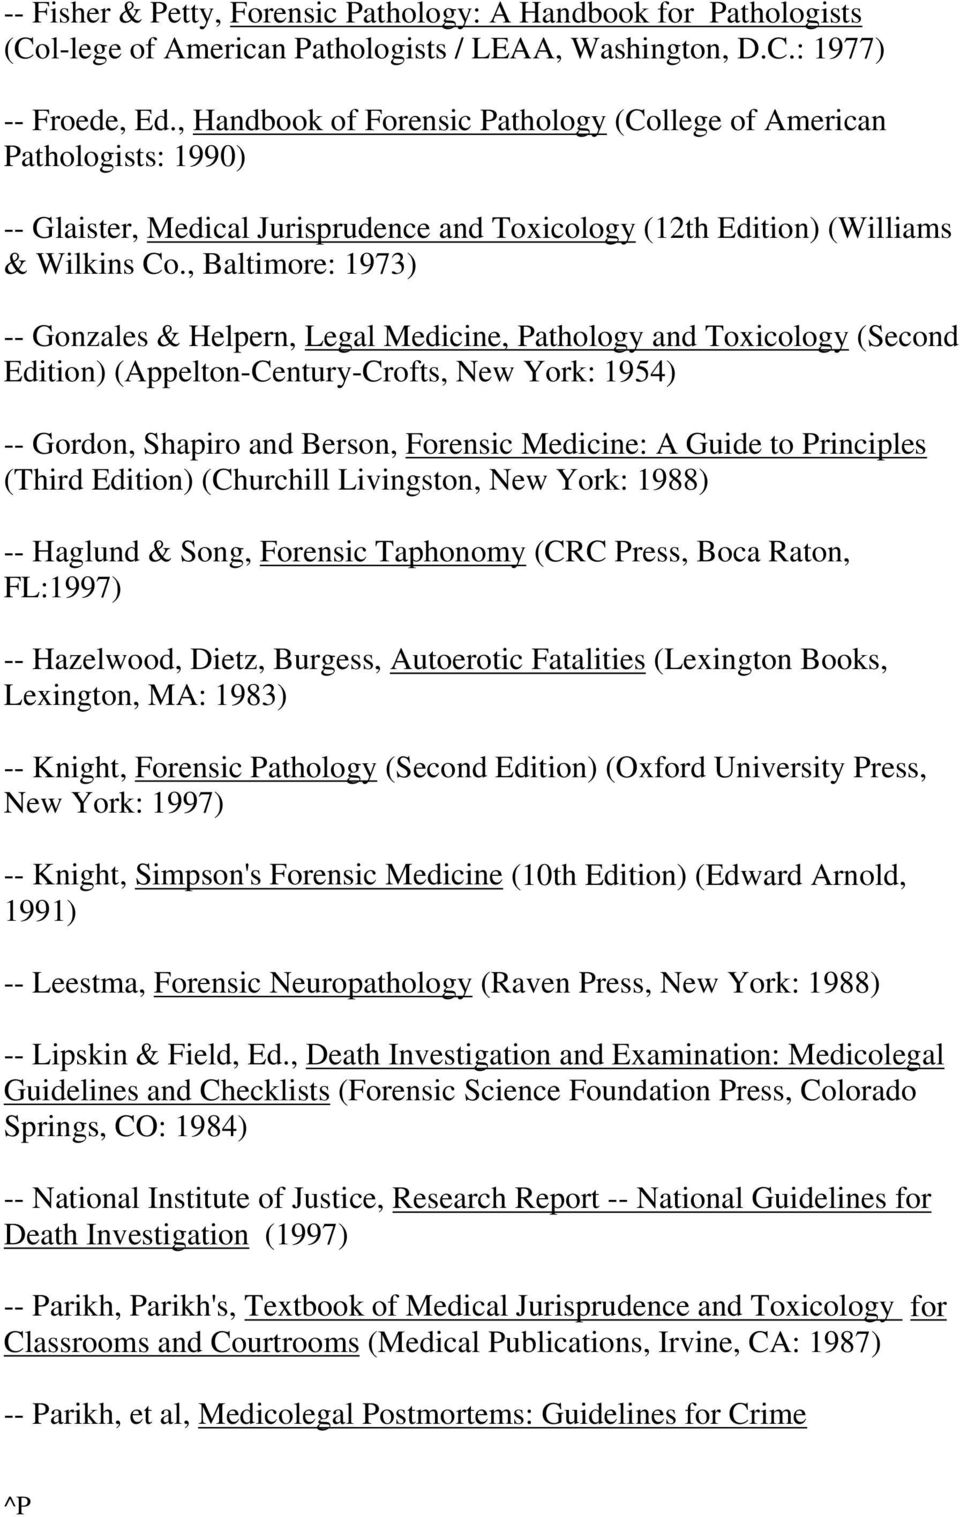 , Baltimore: 1973) -- Gonzales & Helpern, Legal Medicine, Pathology and Toxicology (Second Edition) (Appelton-Century-Crofts, New York: 1954) -- Gordon, Shapiro and Berson, Forensic Medicine: A Guide